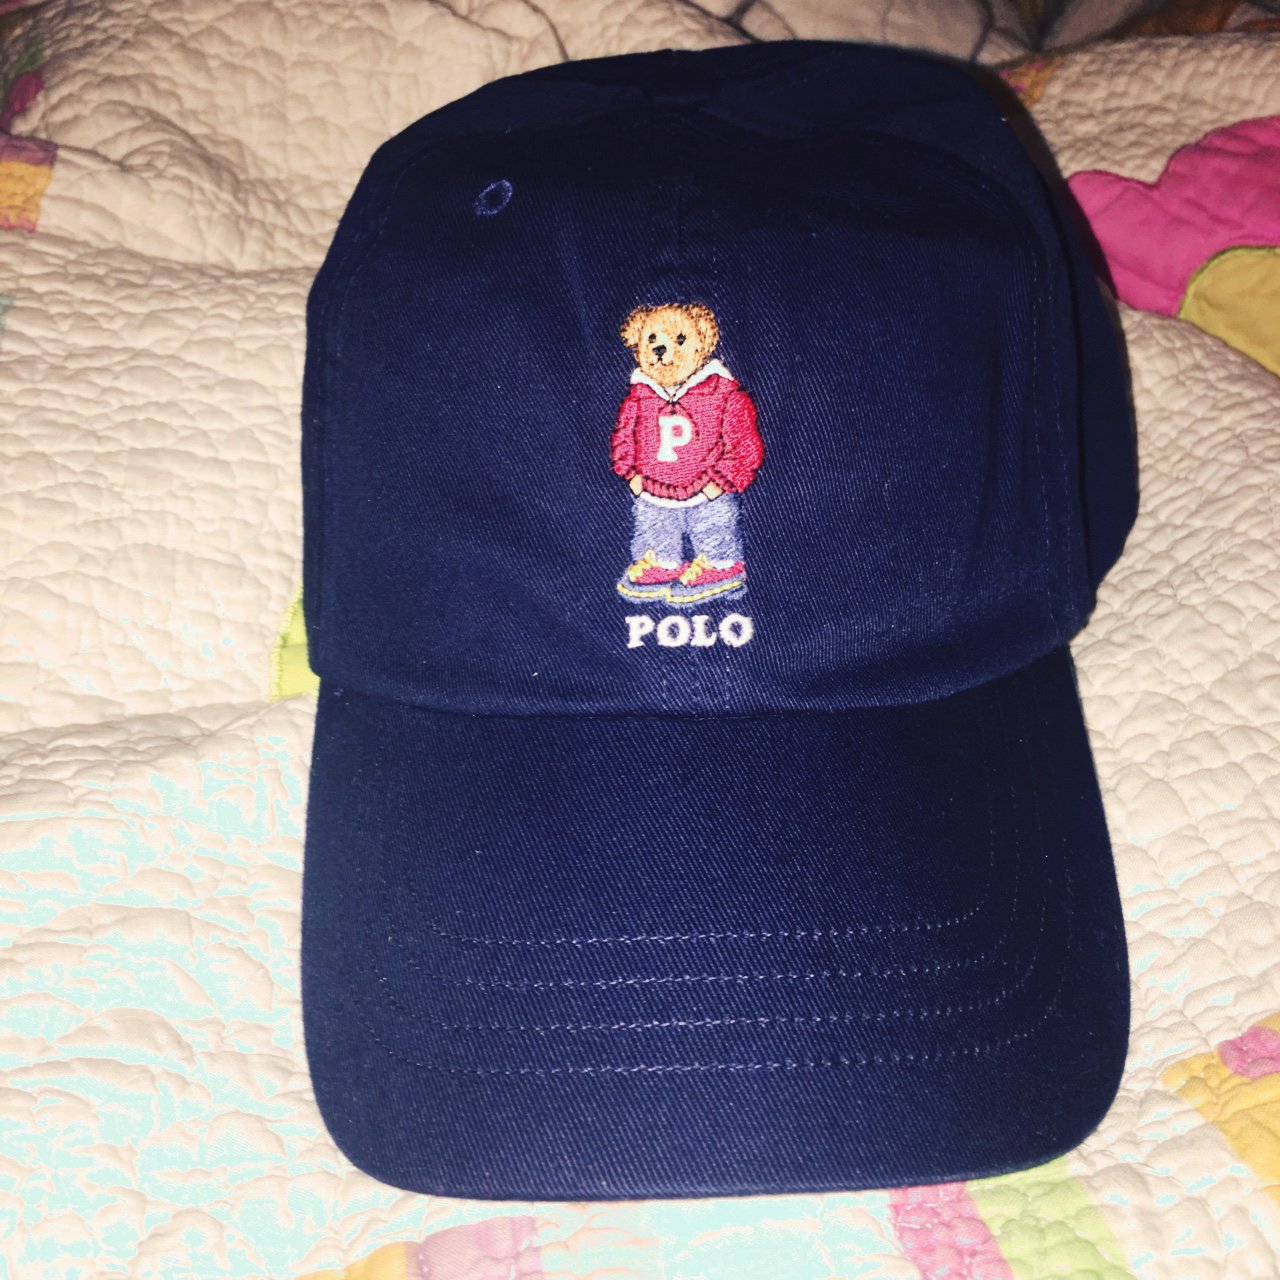 Polo Ralph Lauren cap brand new with tags. PRICE 10 10 - Depop d2ceee777d58